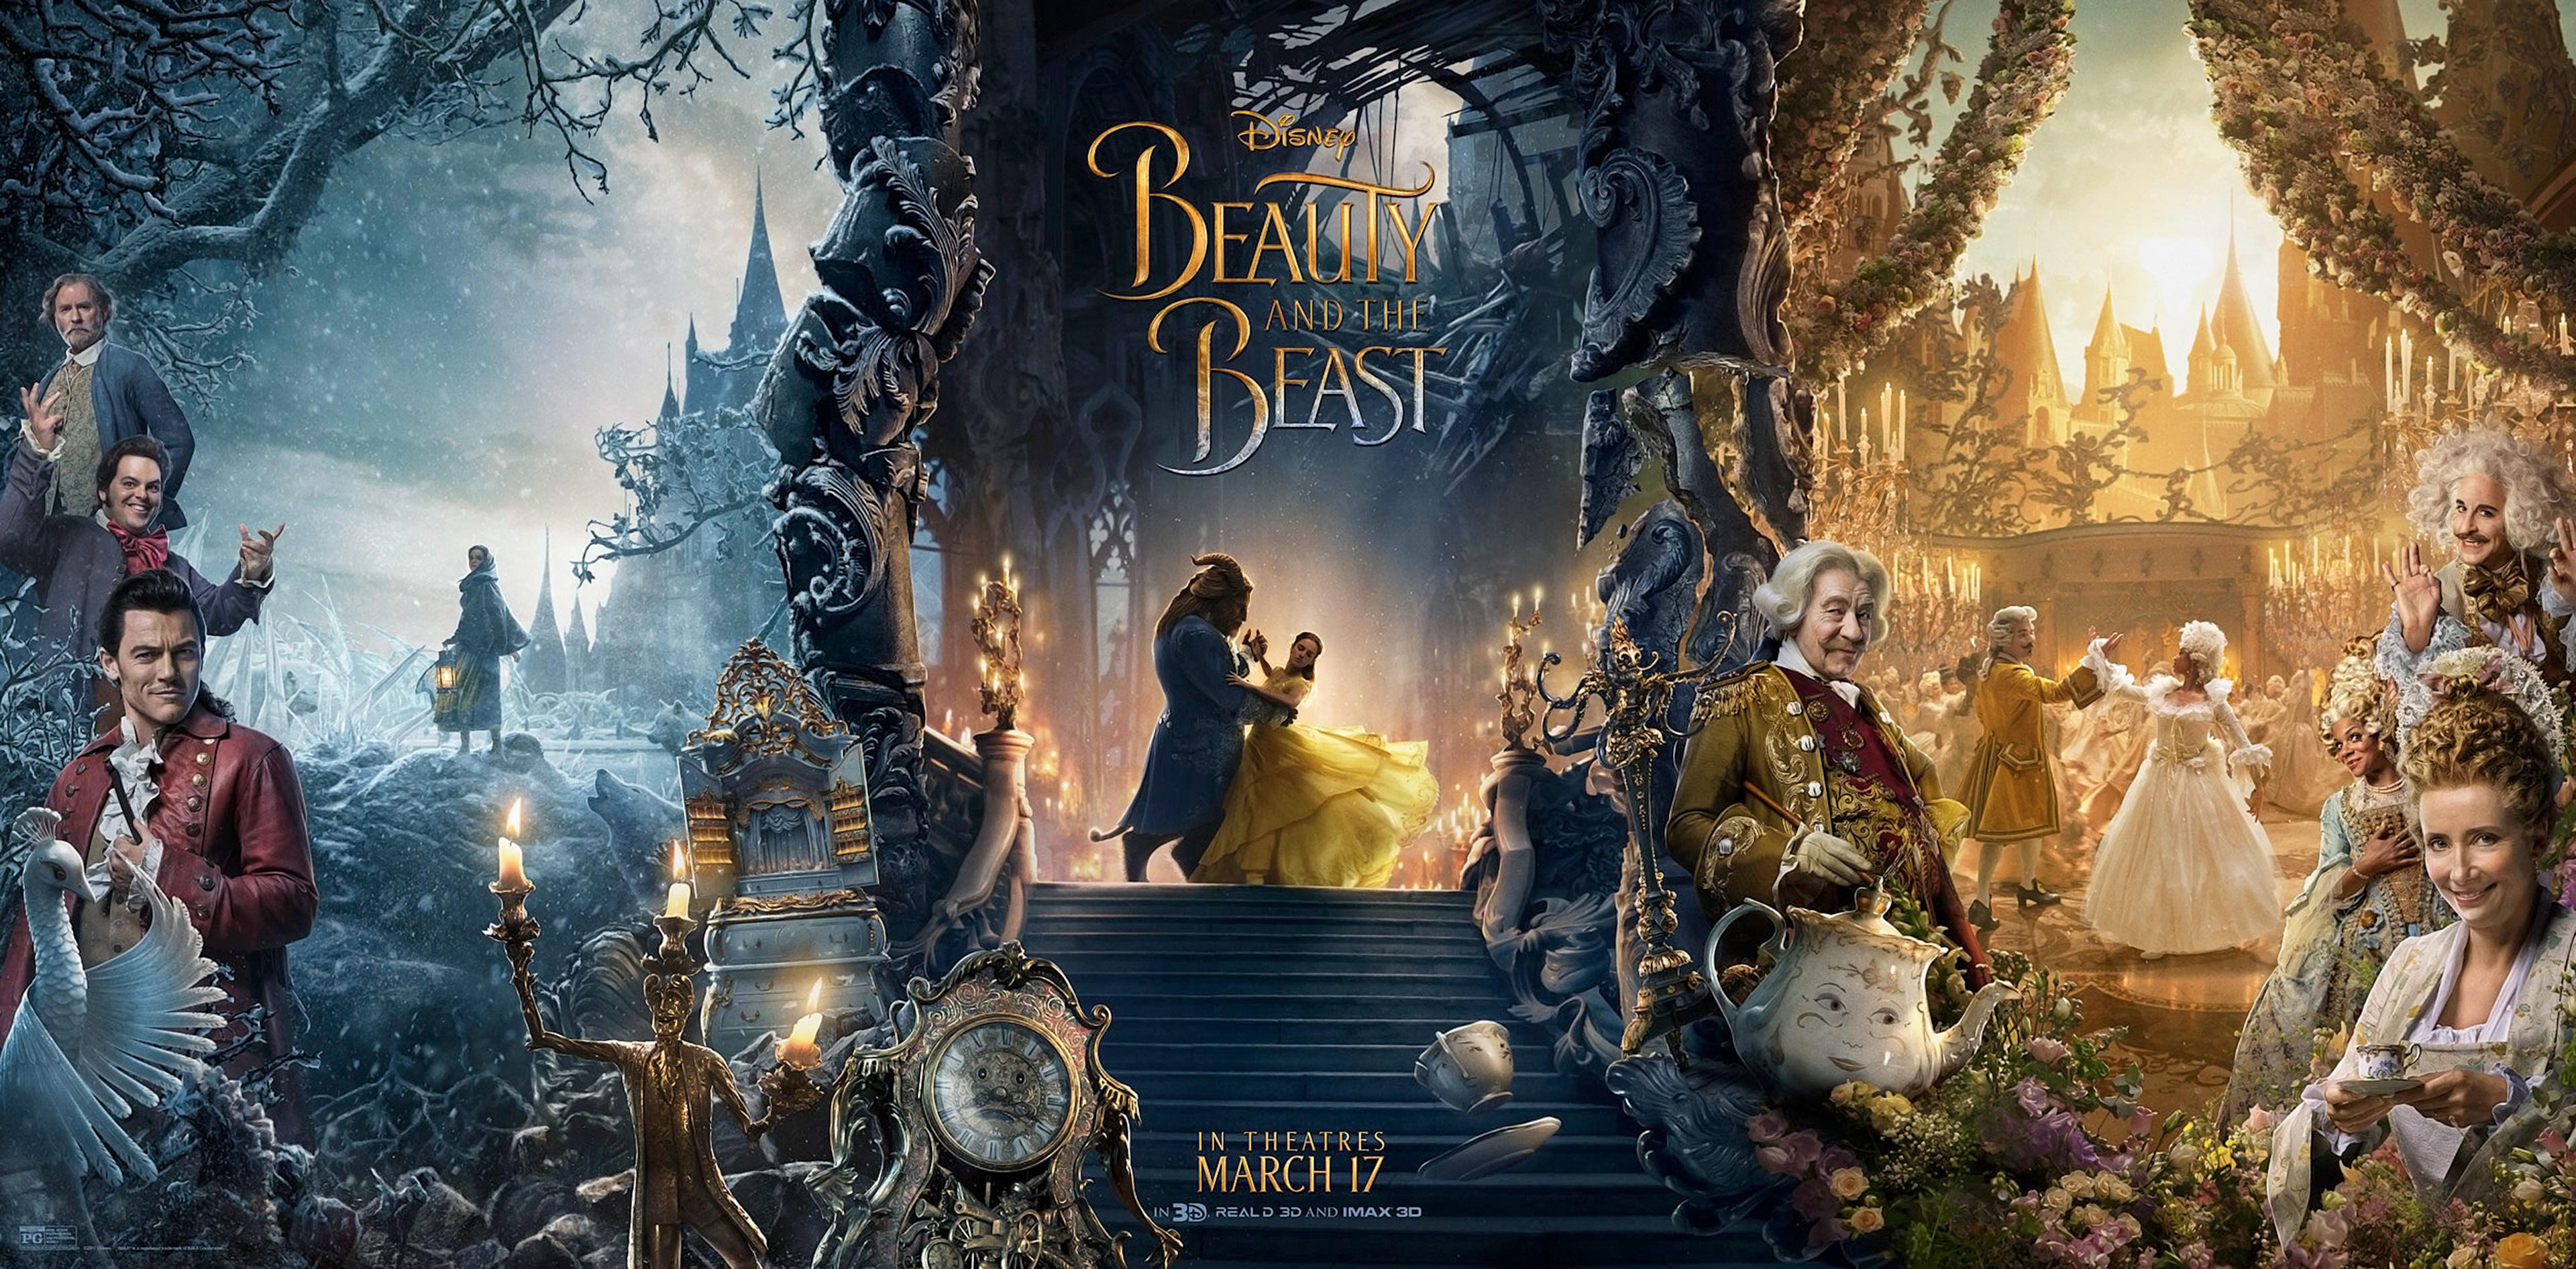 Beauty And The Beast 2017 Fondo De Pantalla Hd Fondo De